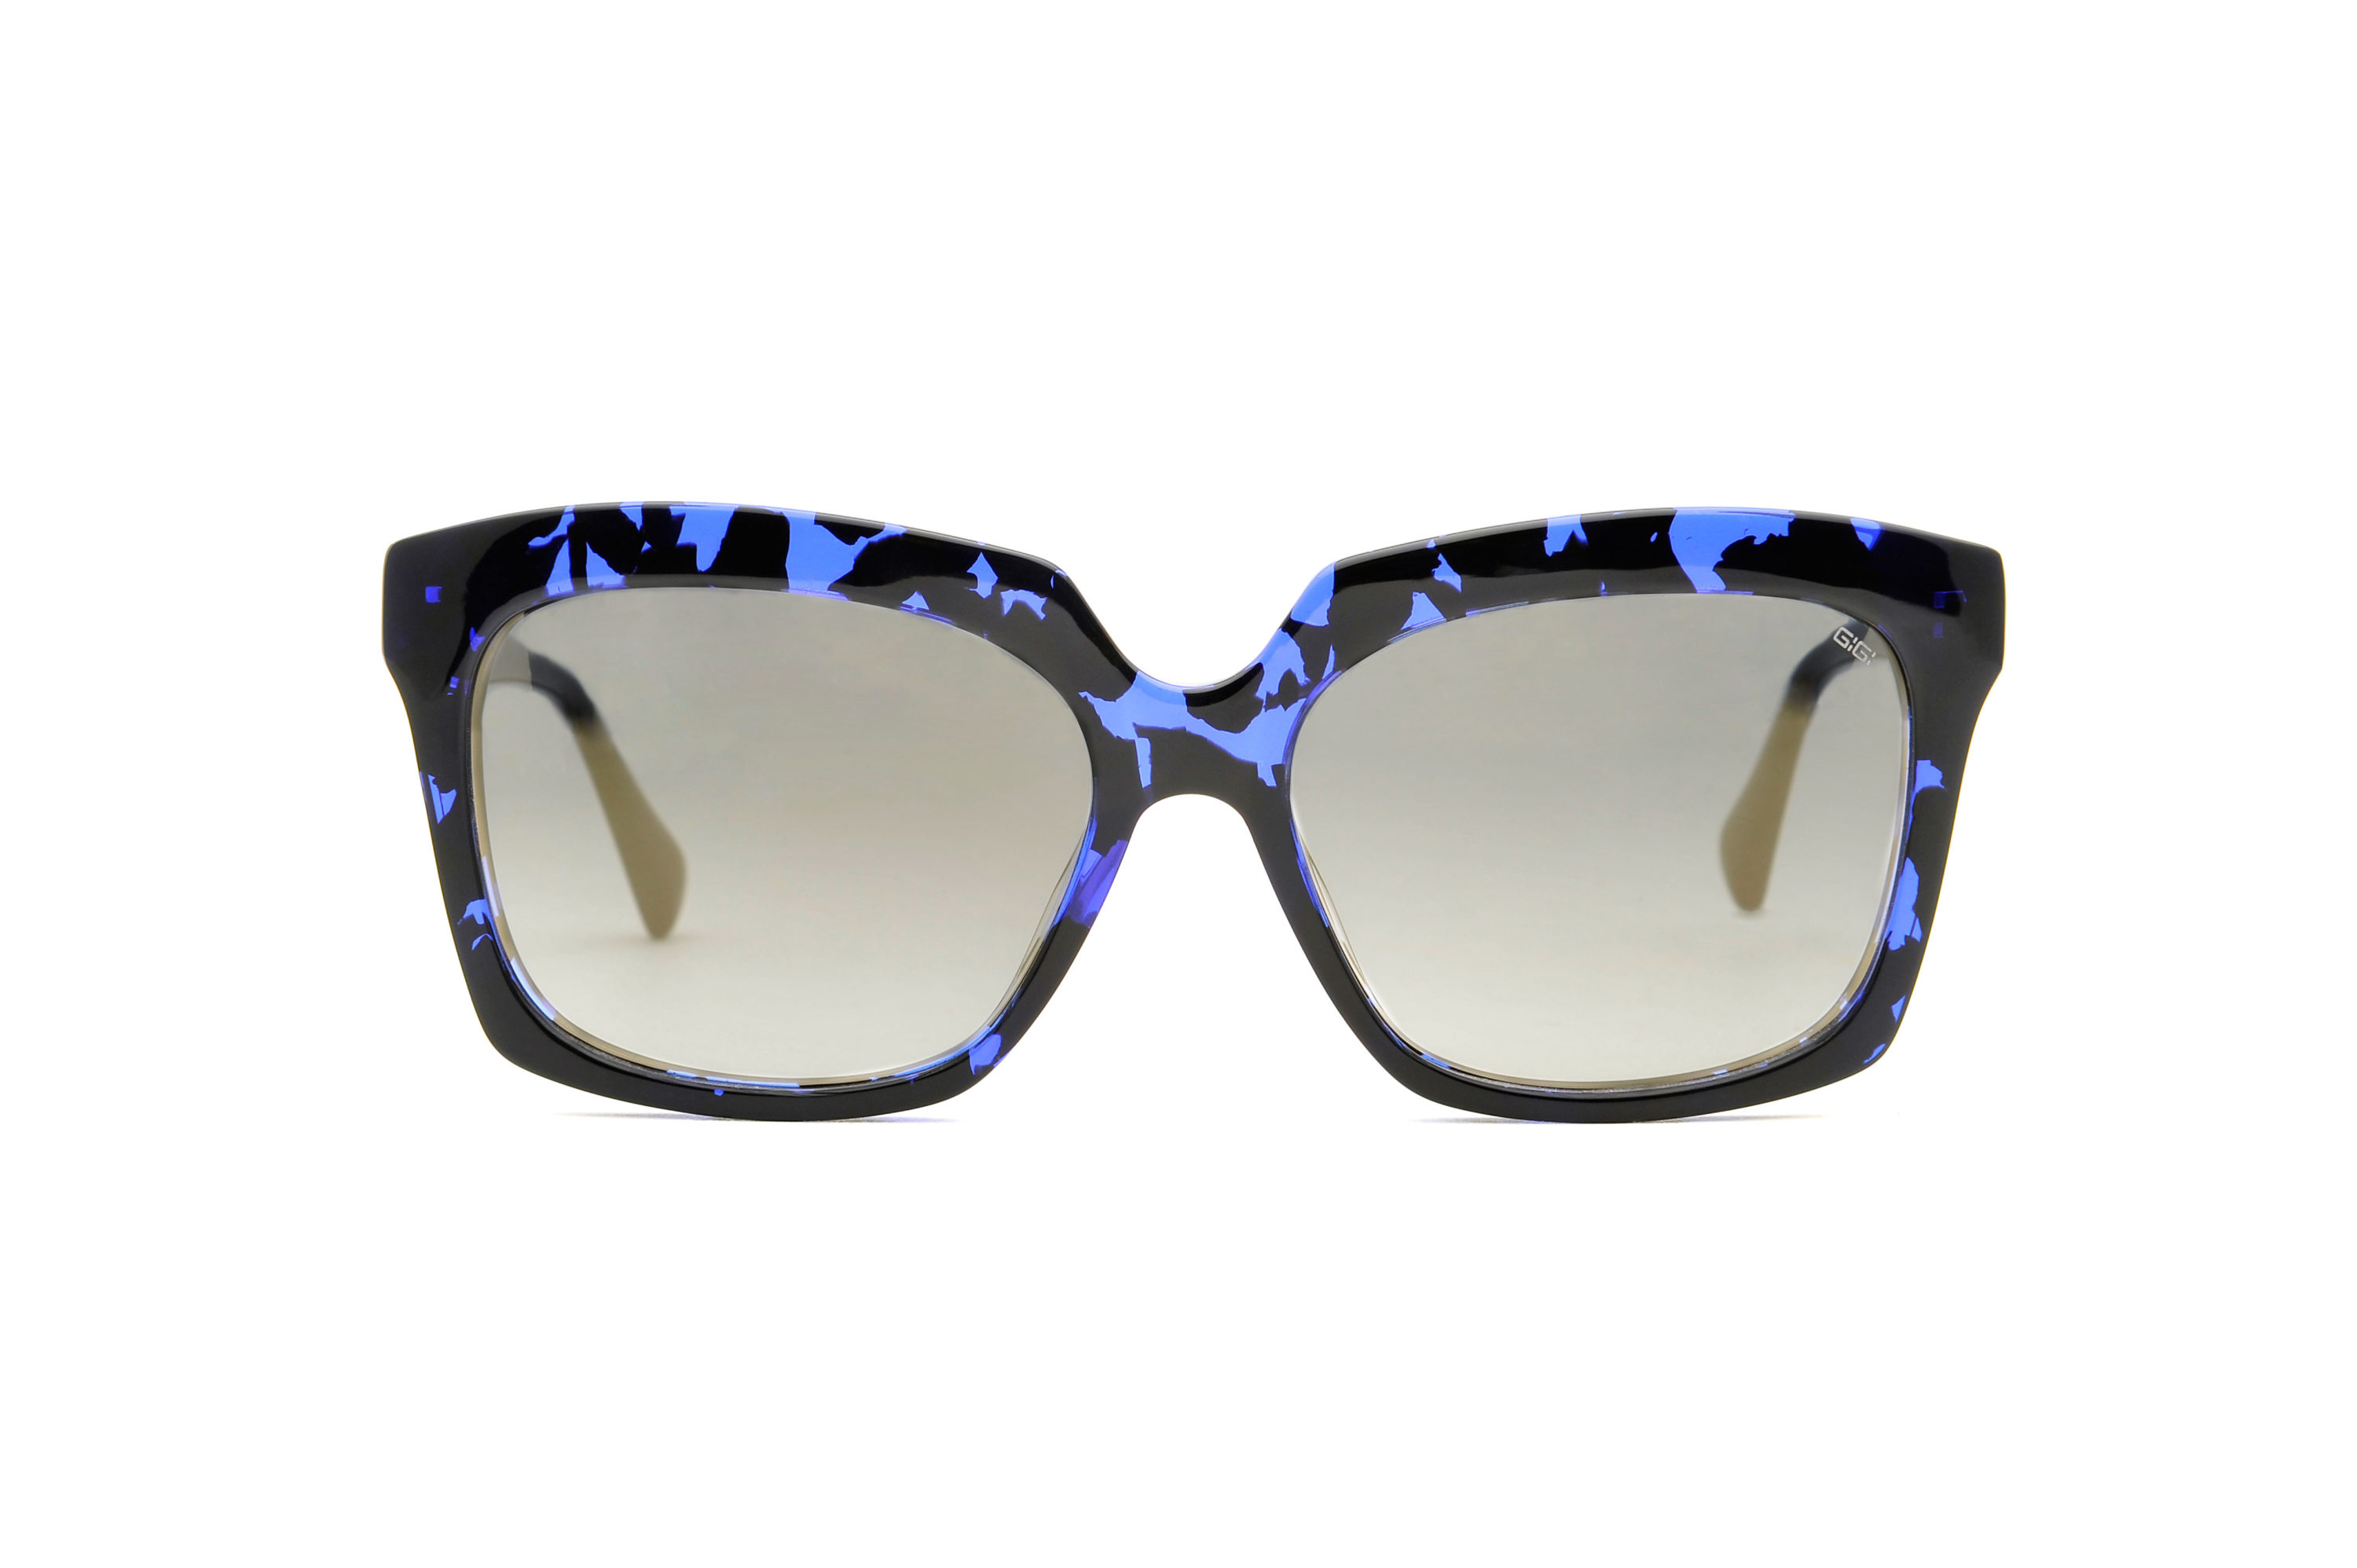 Bella acetate squared blue sunglasses by GIGI Studios